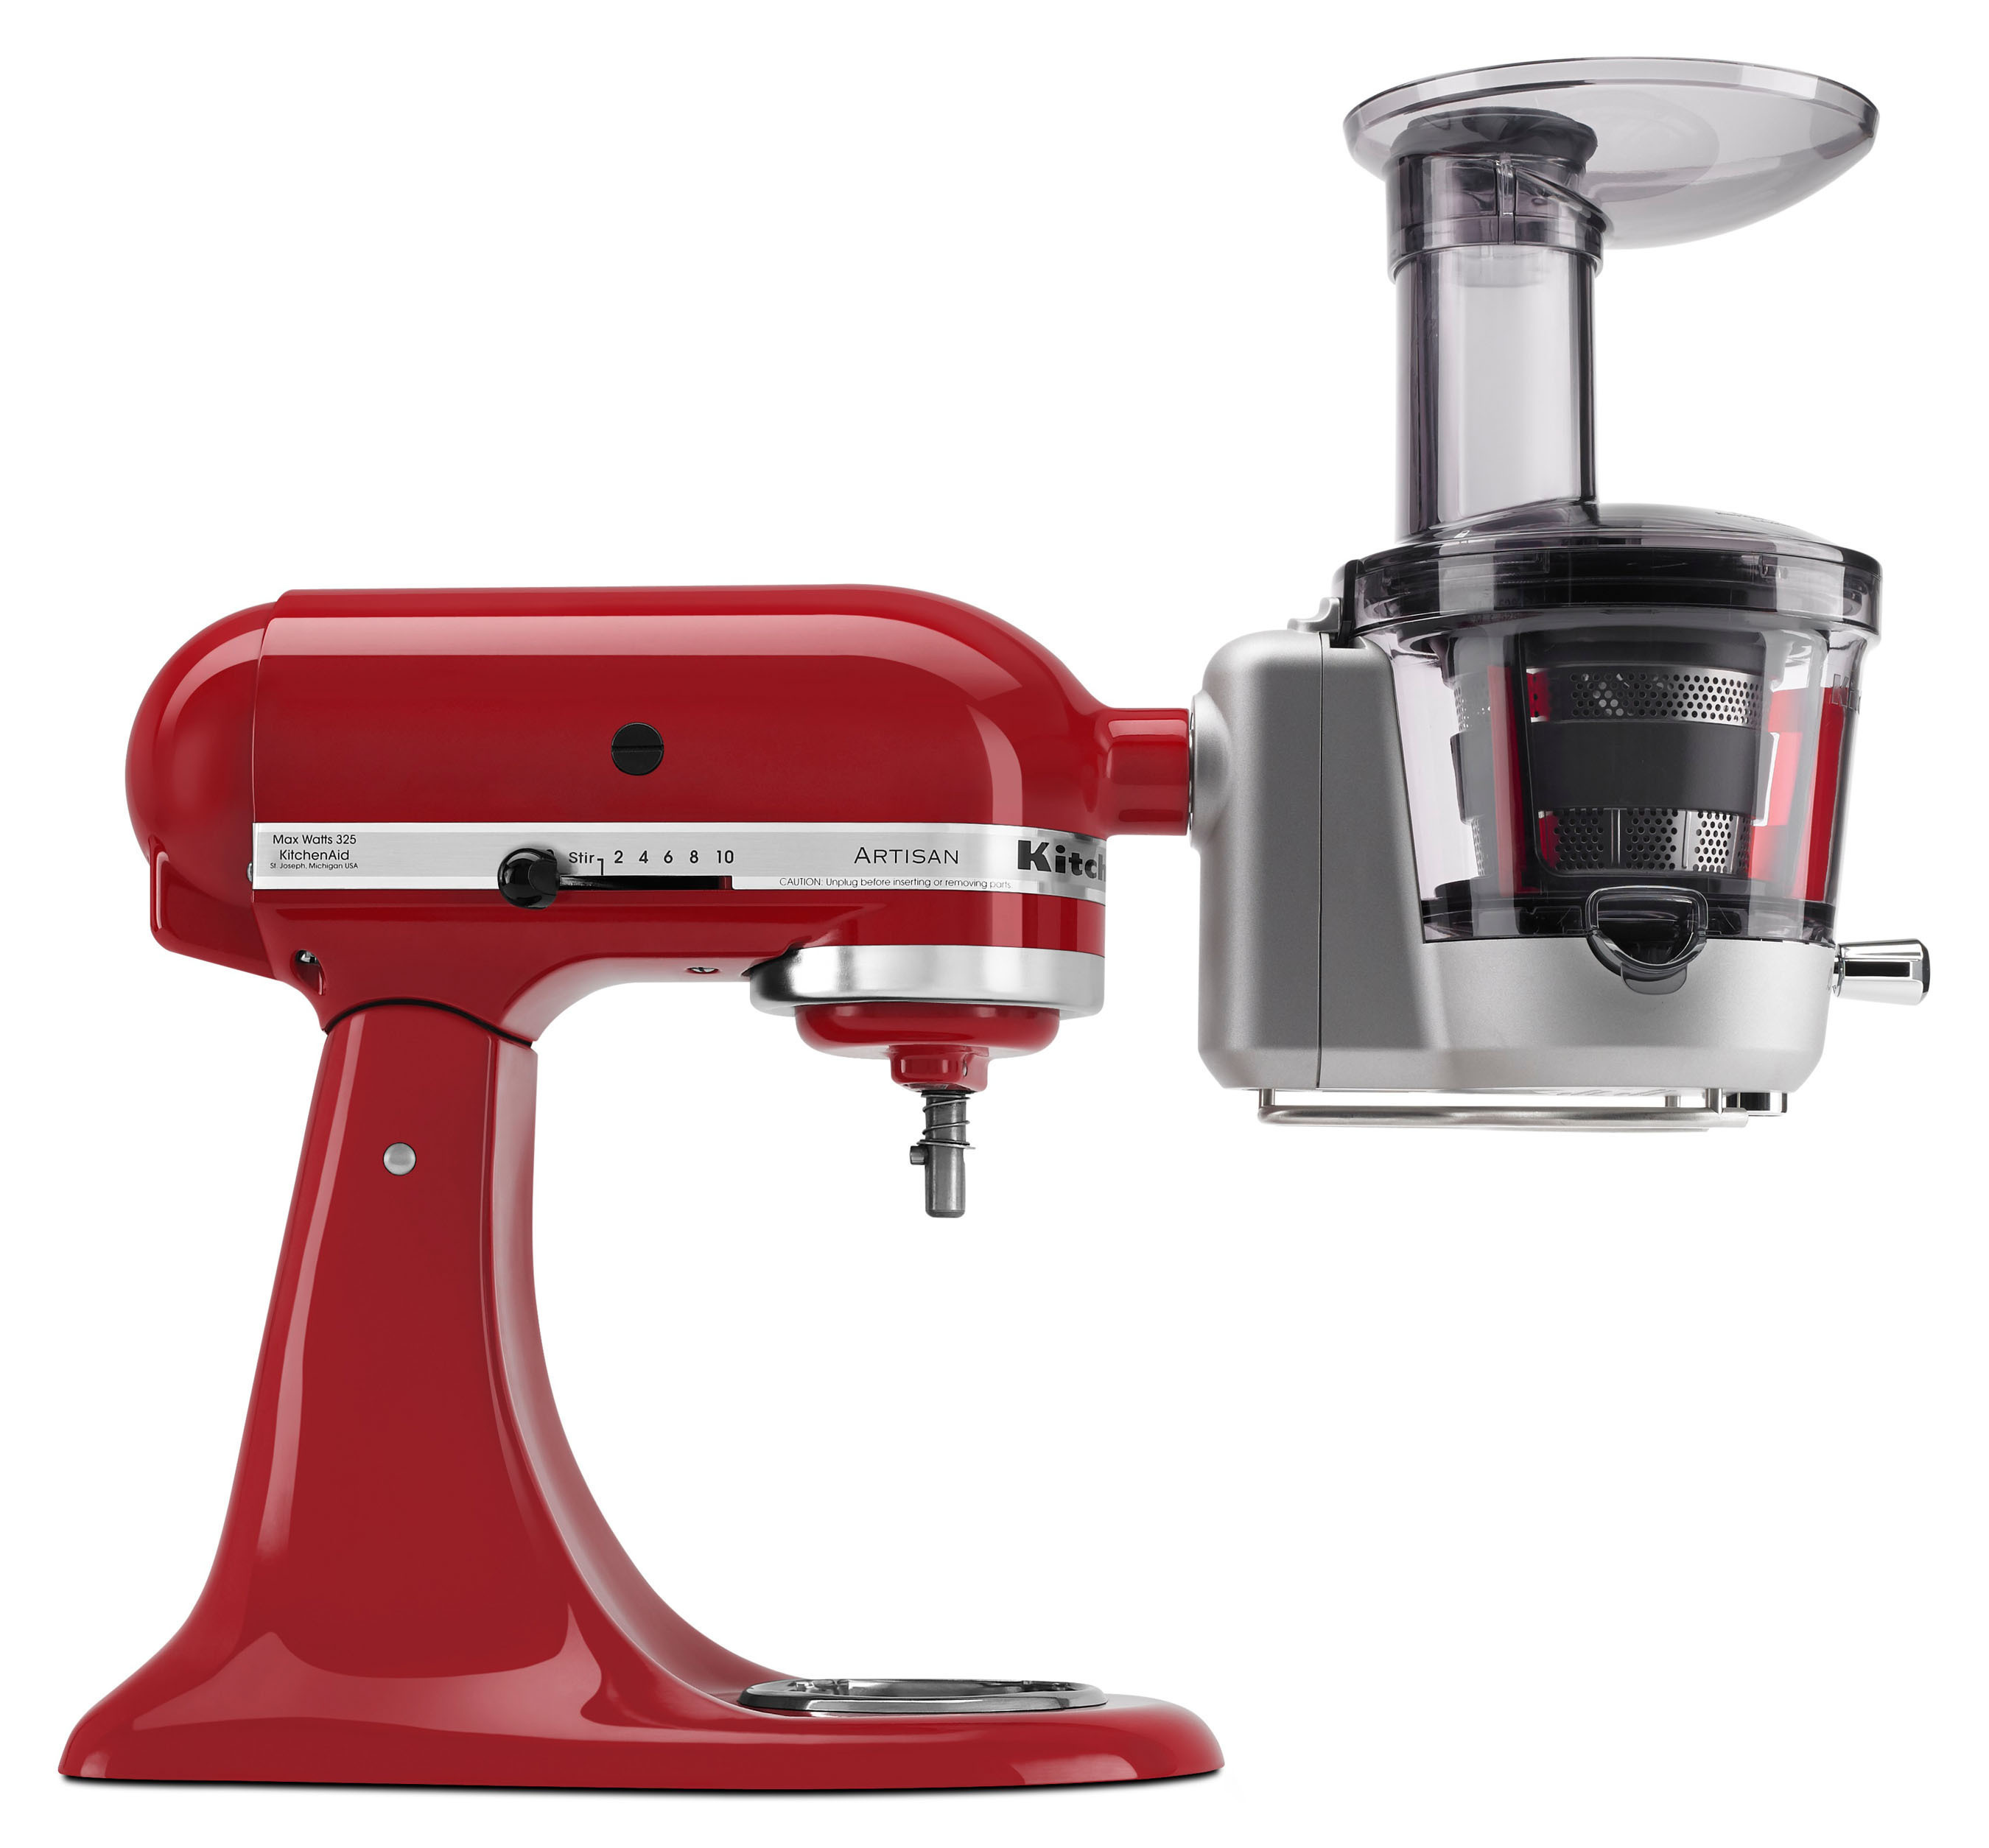 KitchenAid Juicer and Sauce Attachment. (PRNewsFoto/KitchenAid) (PRNewsFoto/KITCHENAID)